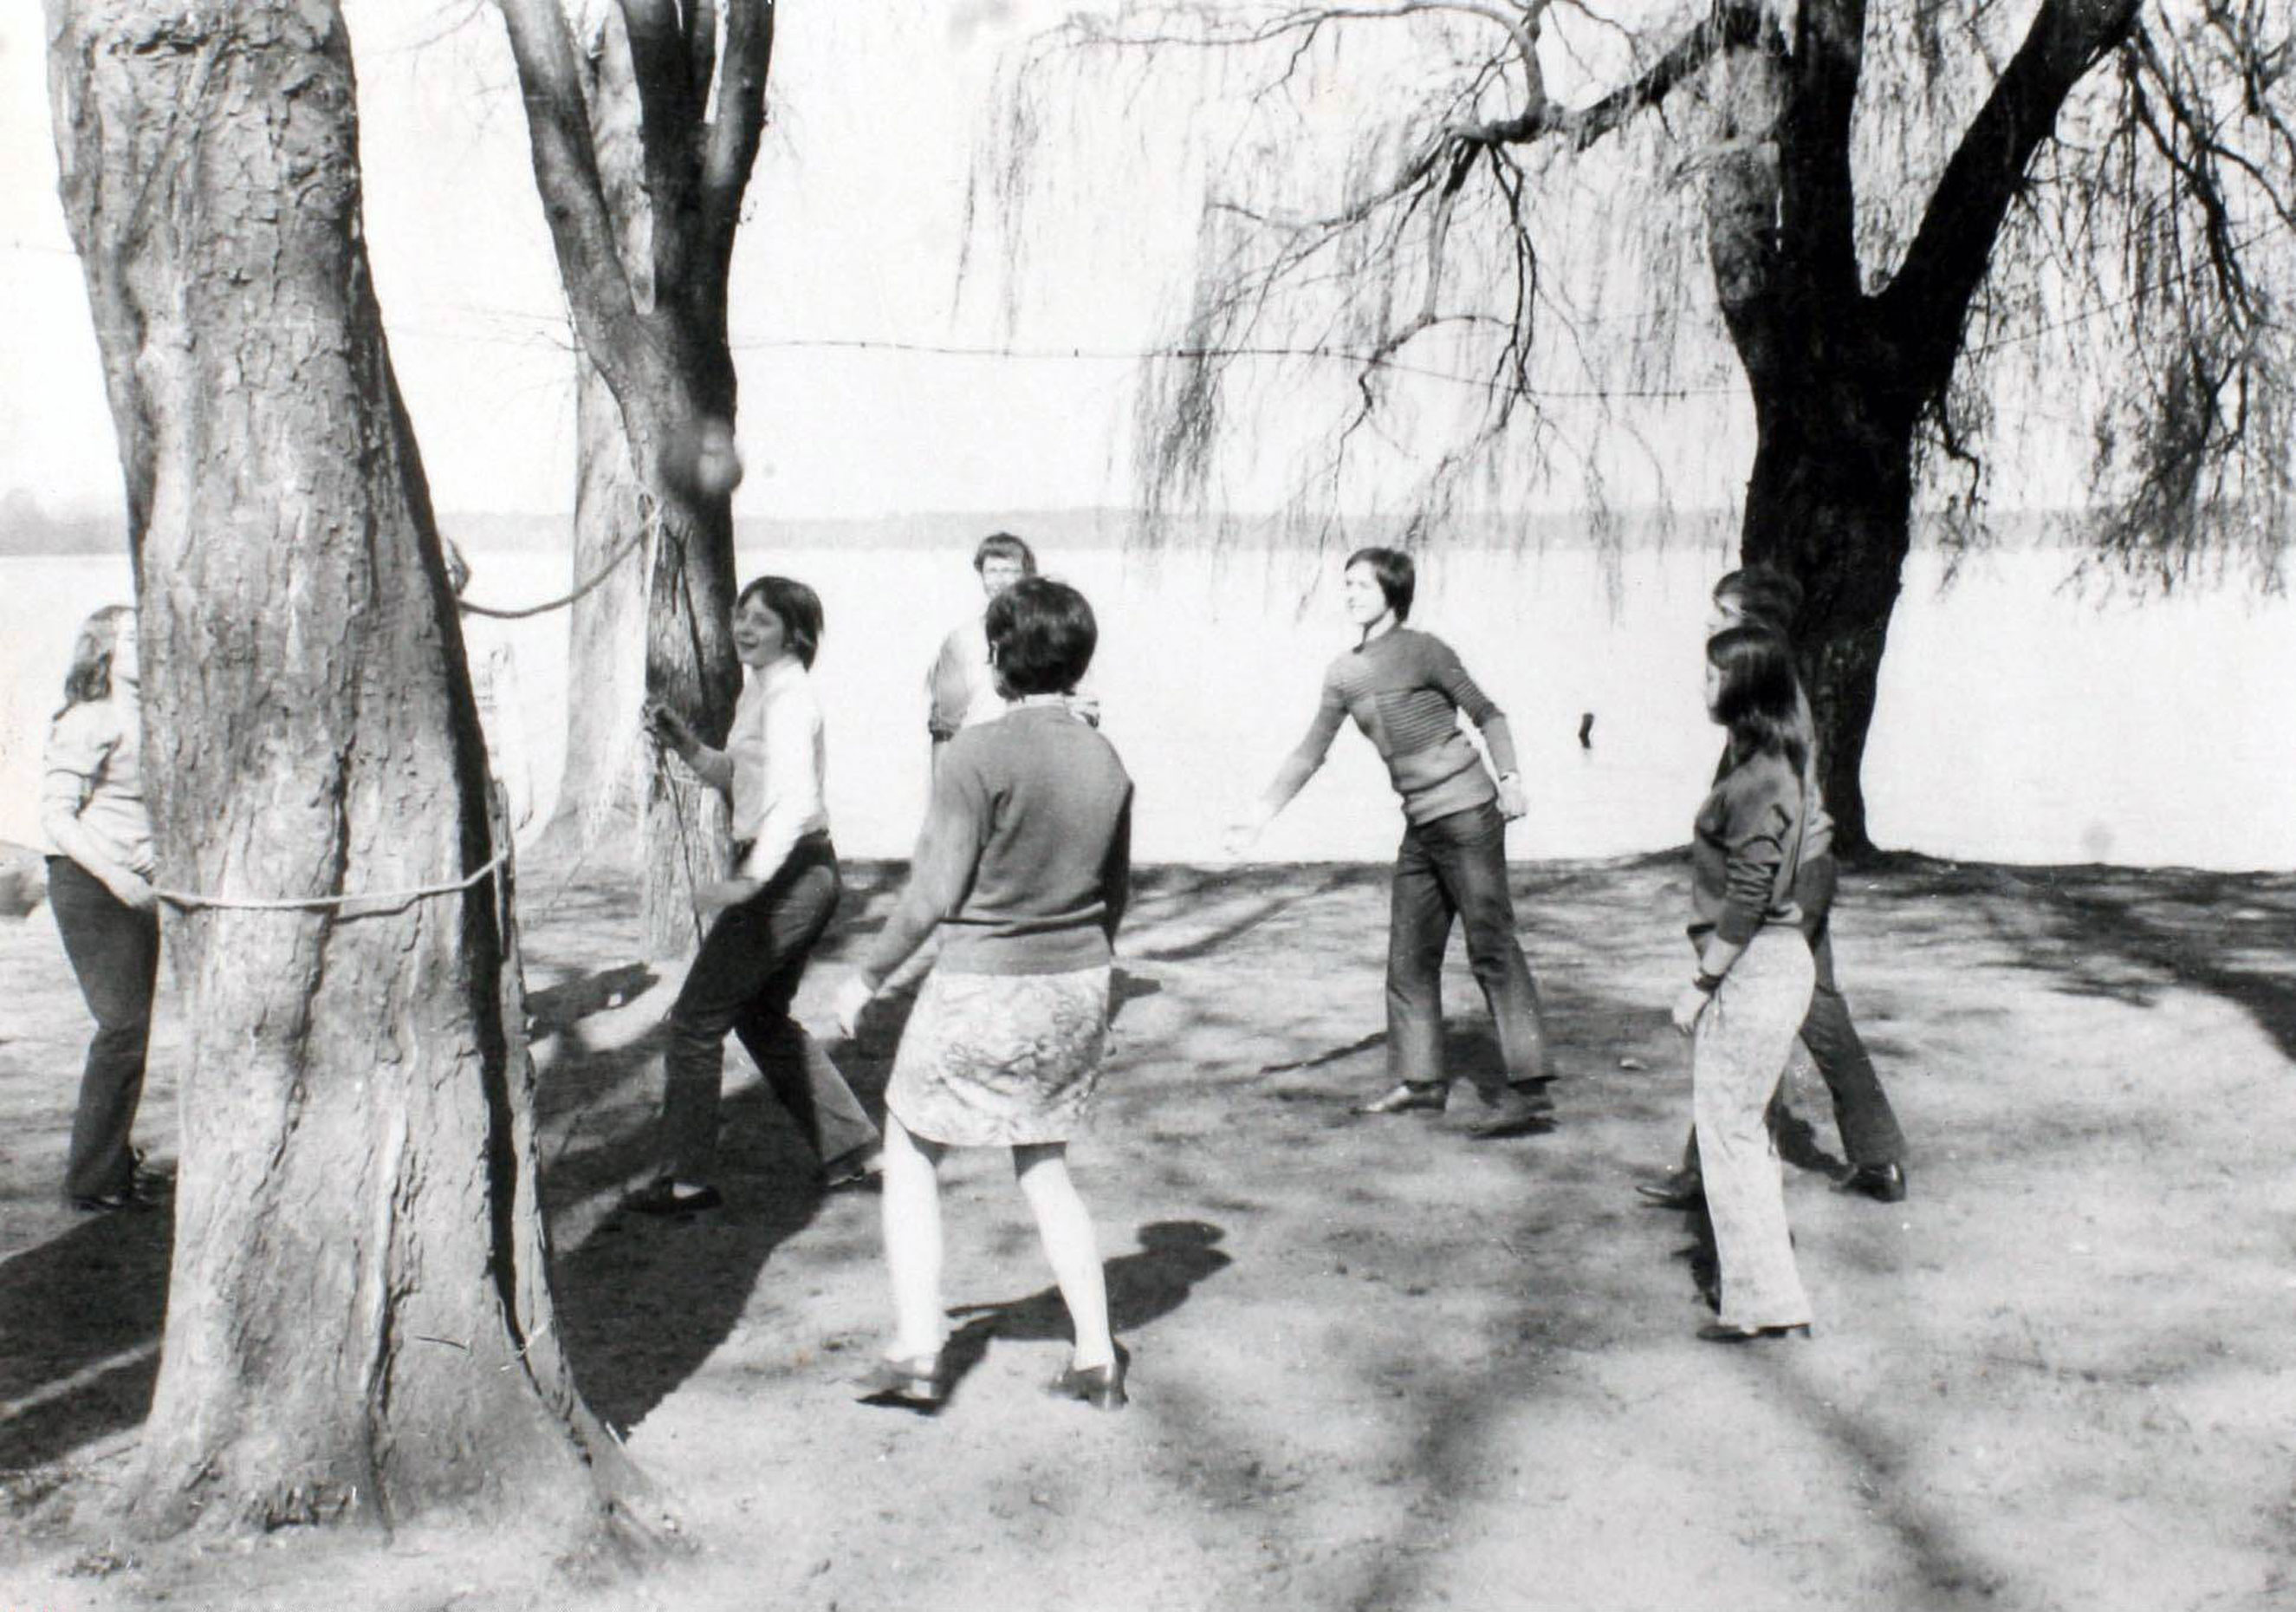 Angela Kasner plays volleyball during a school outing in Wandlitz near Berlin in 1972.